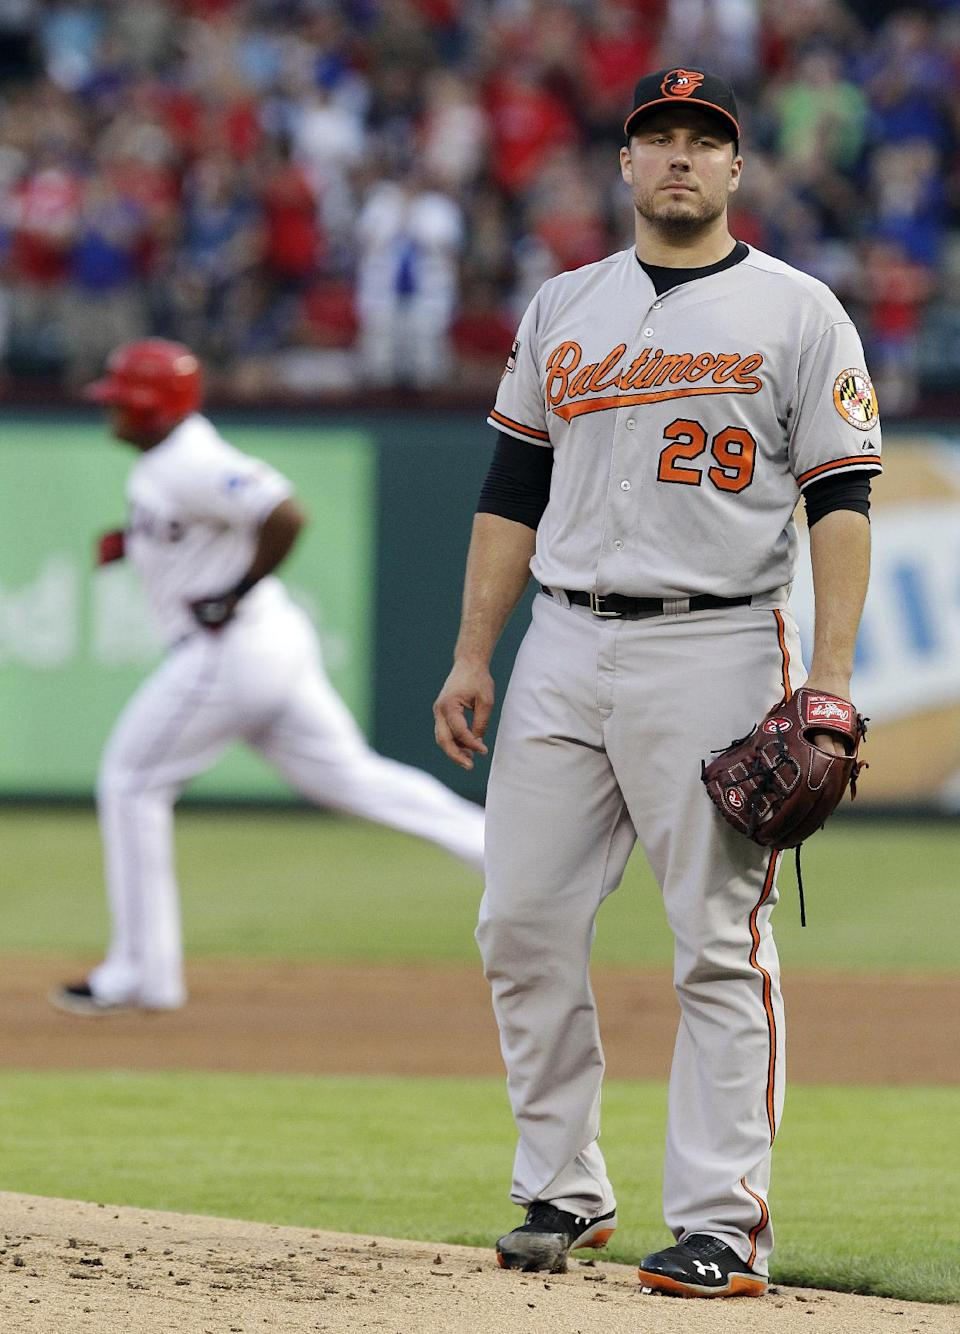 Baltimore Orioles starting pitcher Tommy Hunter (29) stands on the mound as Texas Rangers' Adrian Beltre rounds the bases after his solo home run during the second inning of a baseball game, Wednesday, Aug. 22, 2012, in Arlington, Texas. (AP Photo/LM Otero)